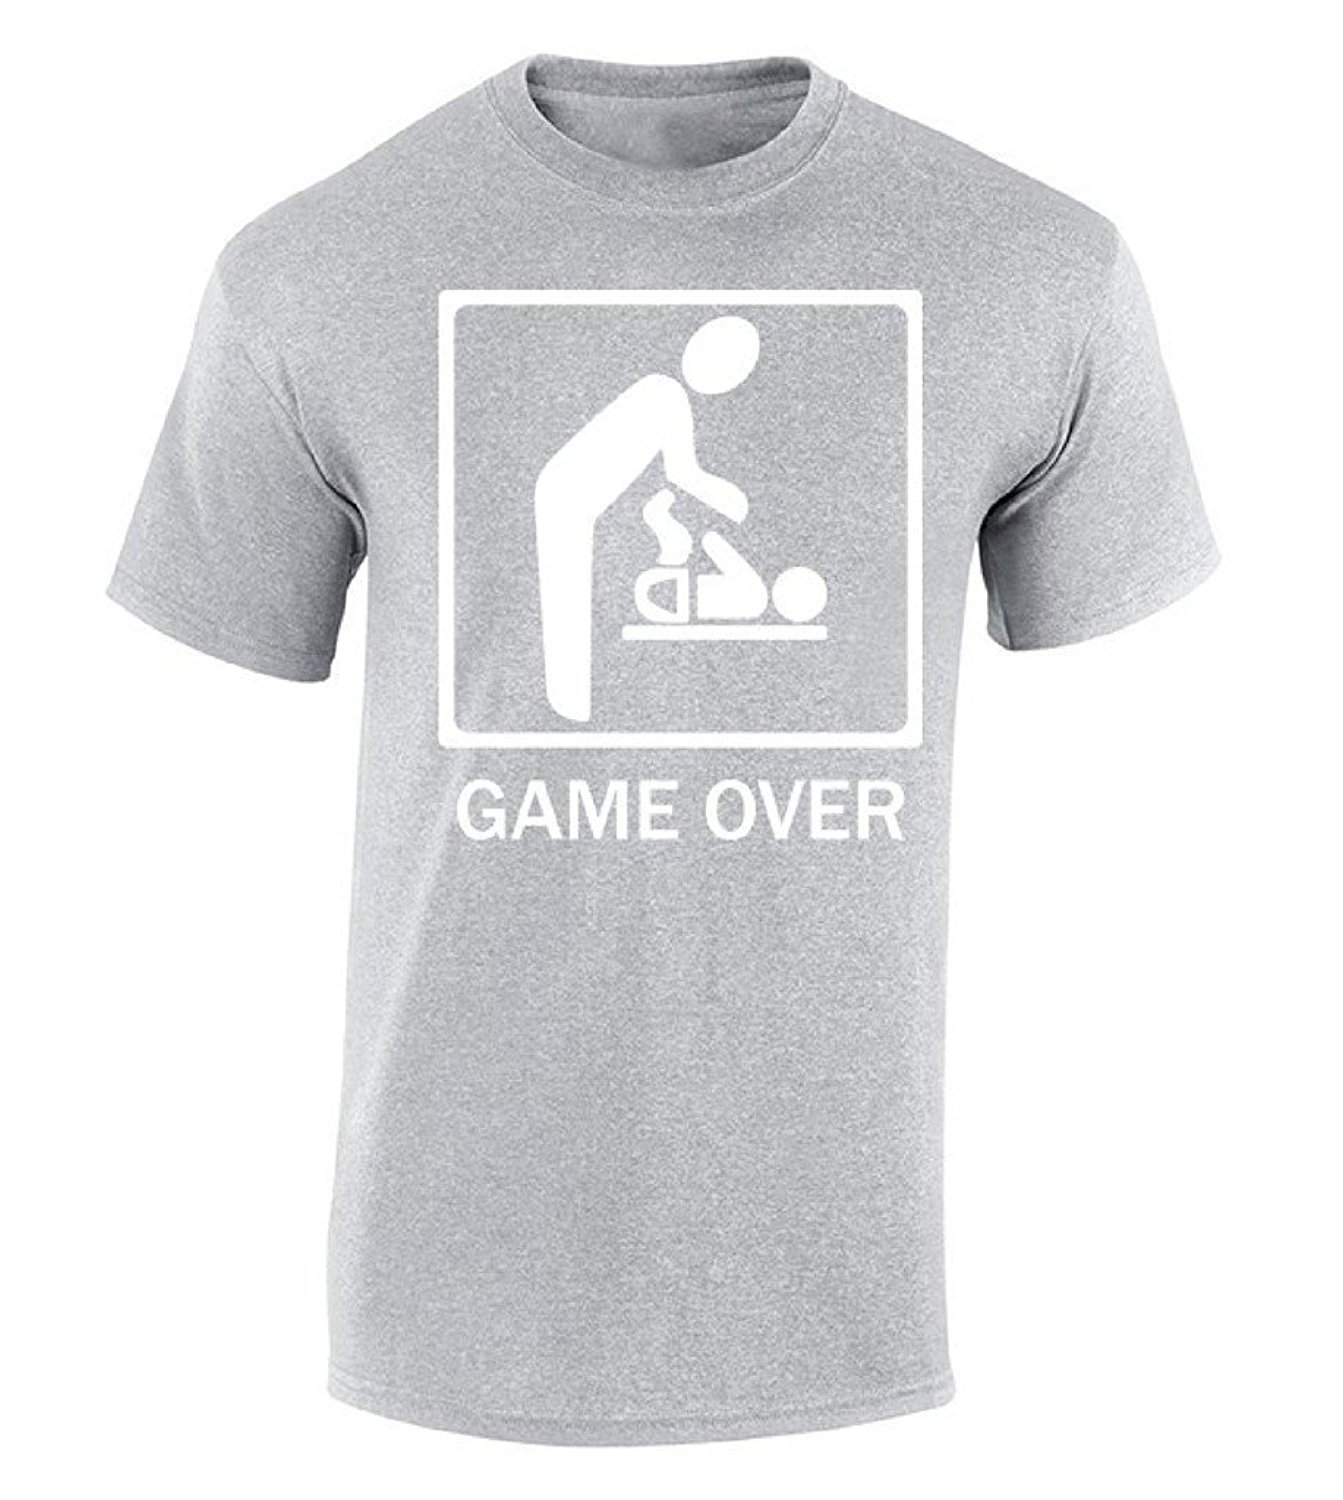 Cotton Jersey Mens Tees Game Over T shirt Cool New Dad New Mom Gift